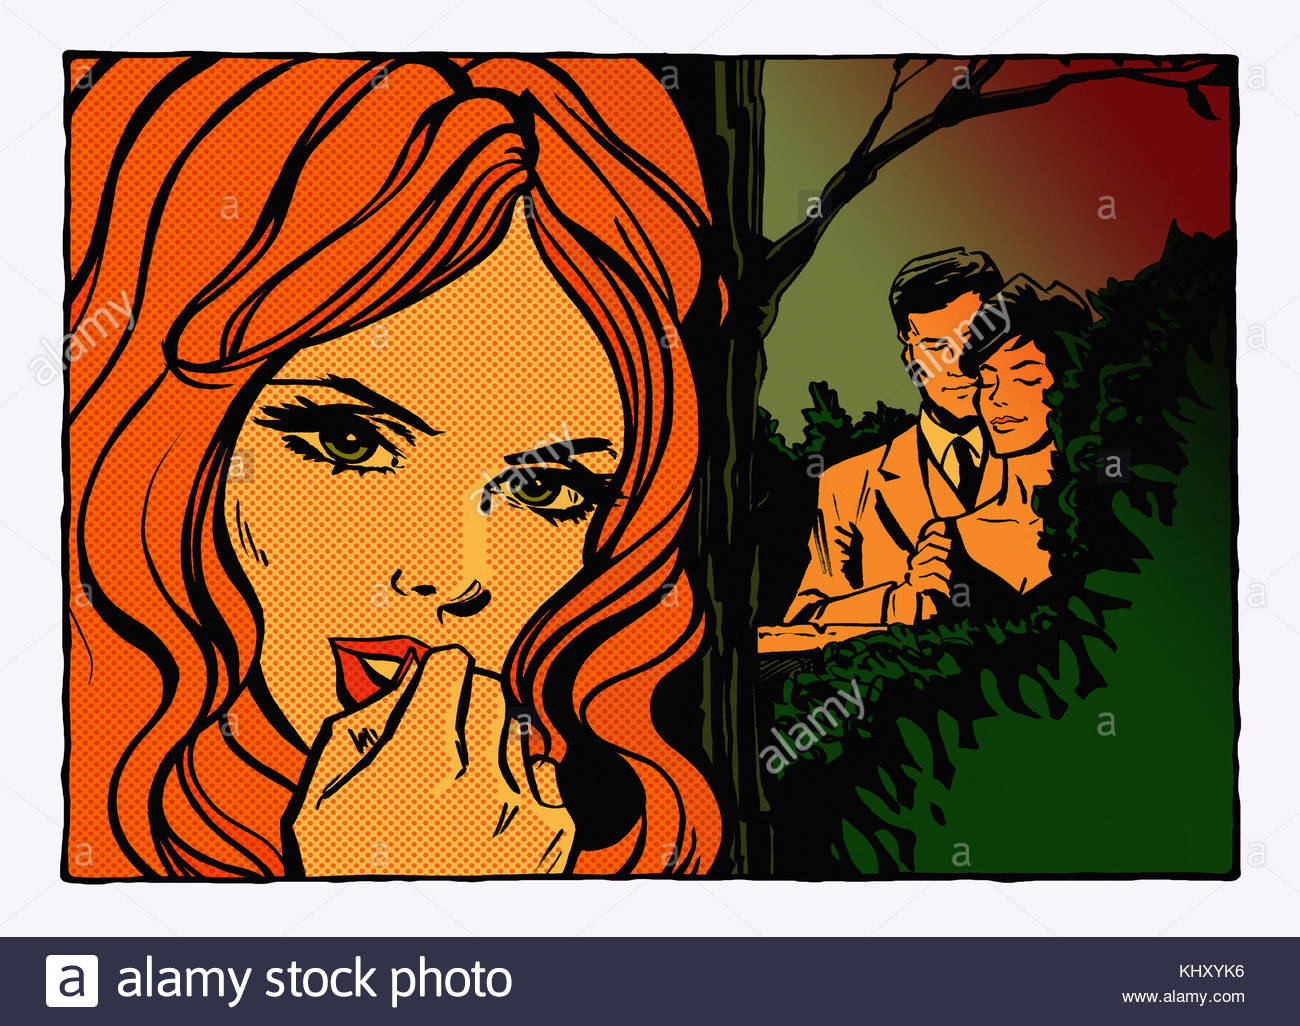 Girlfriend discovering unfaithful boyfriend with another woman - Stock Image